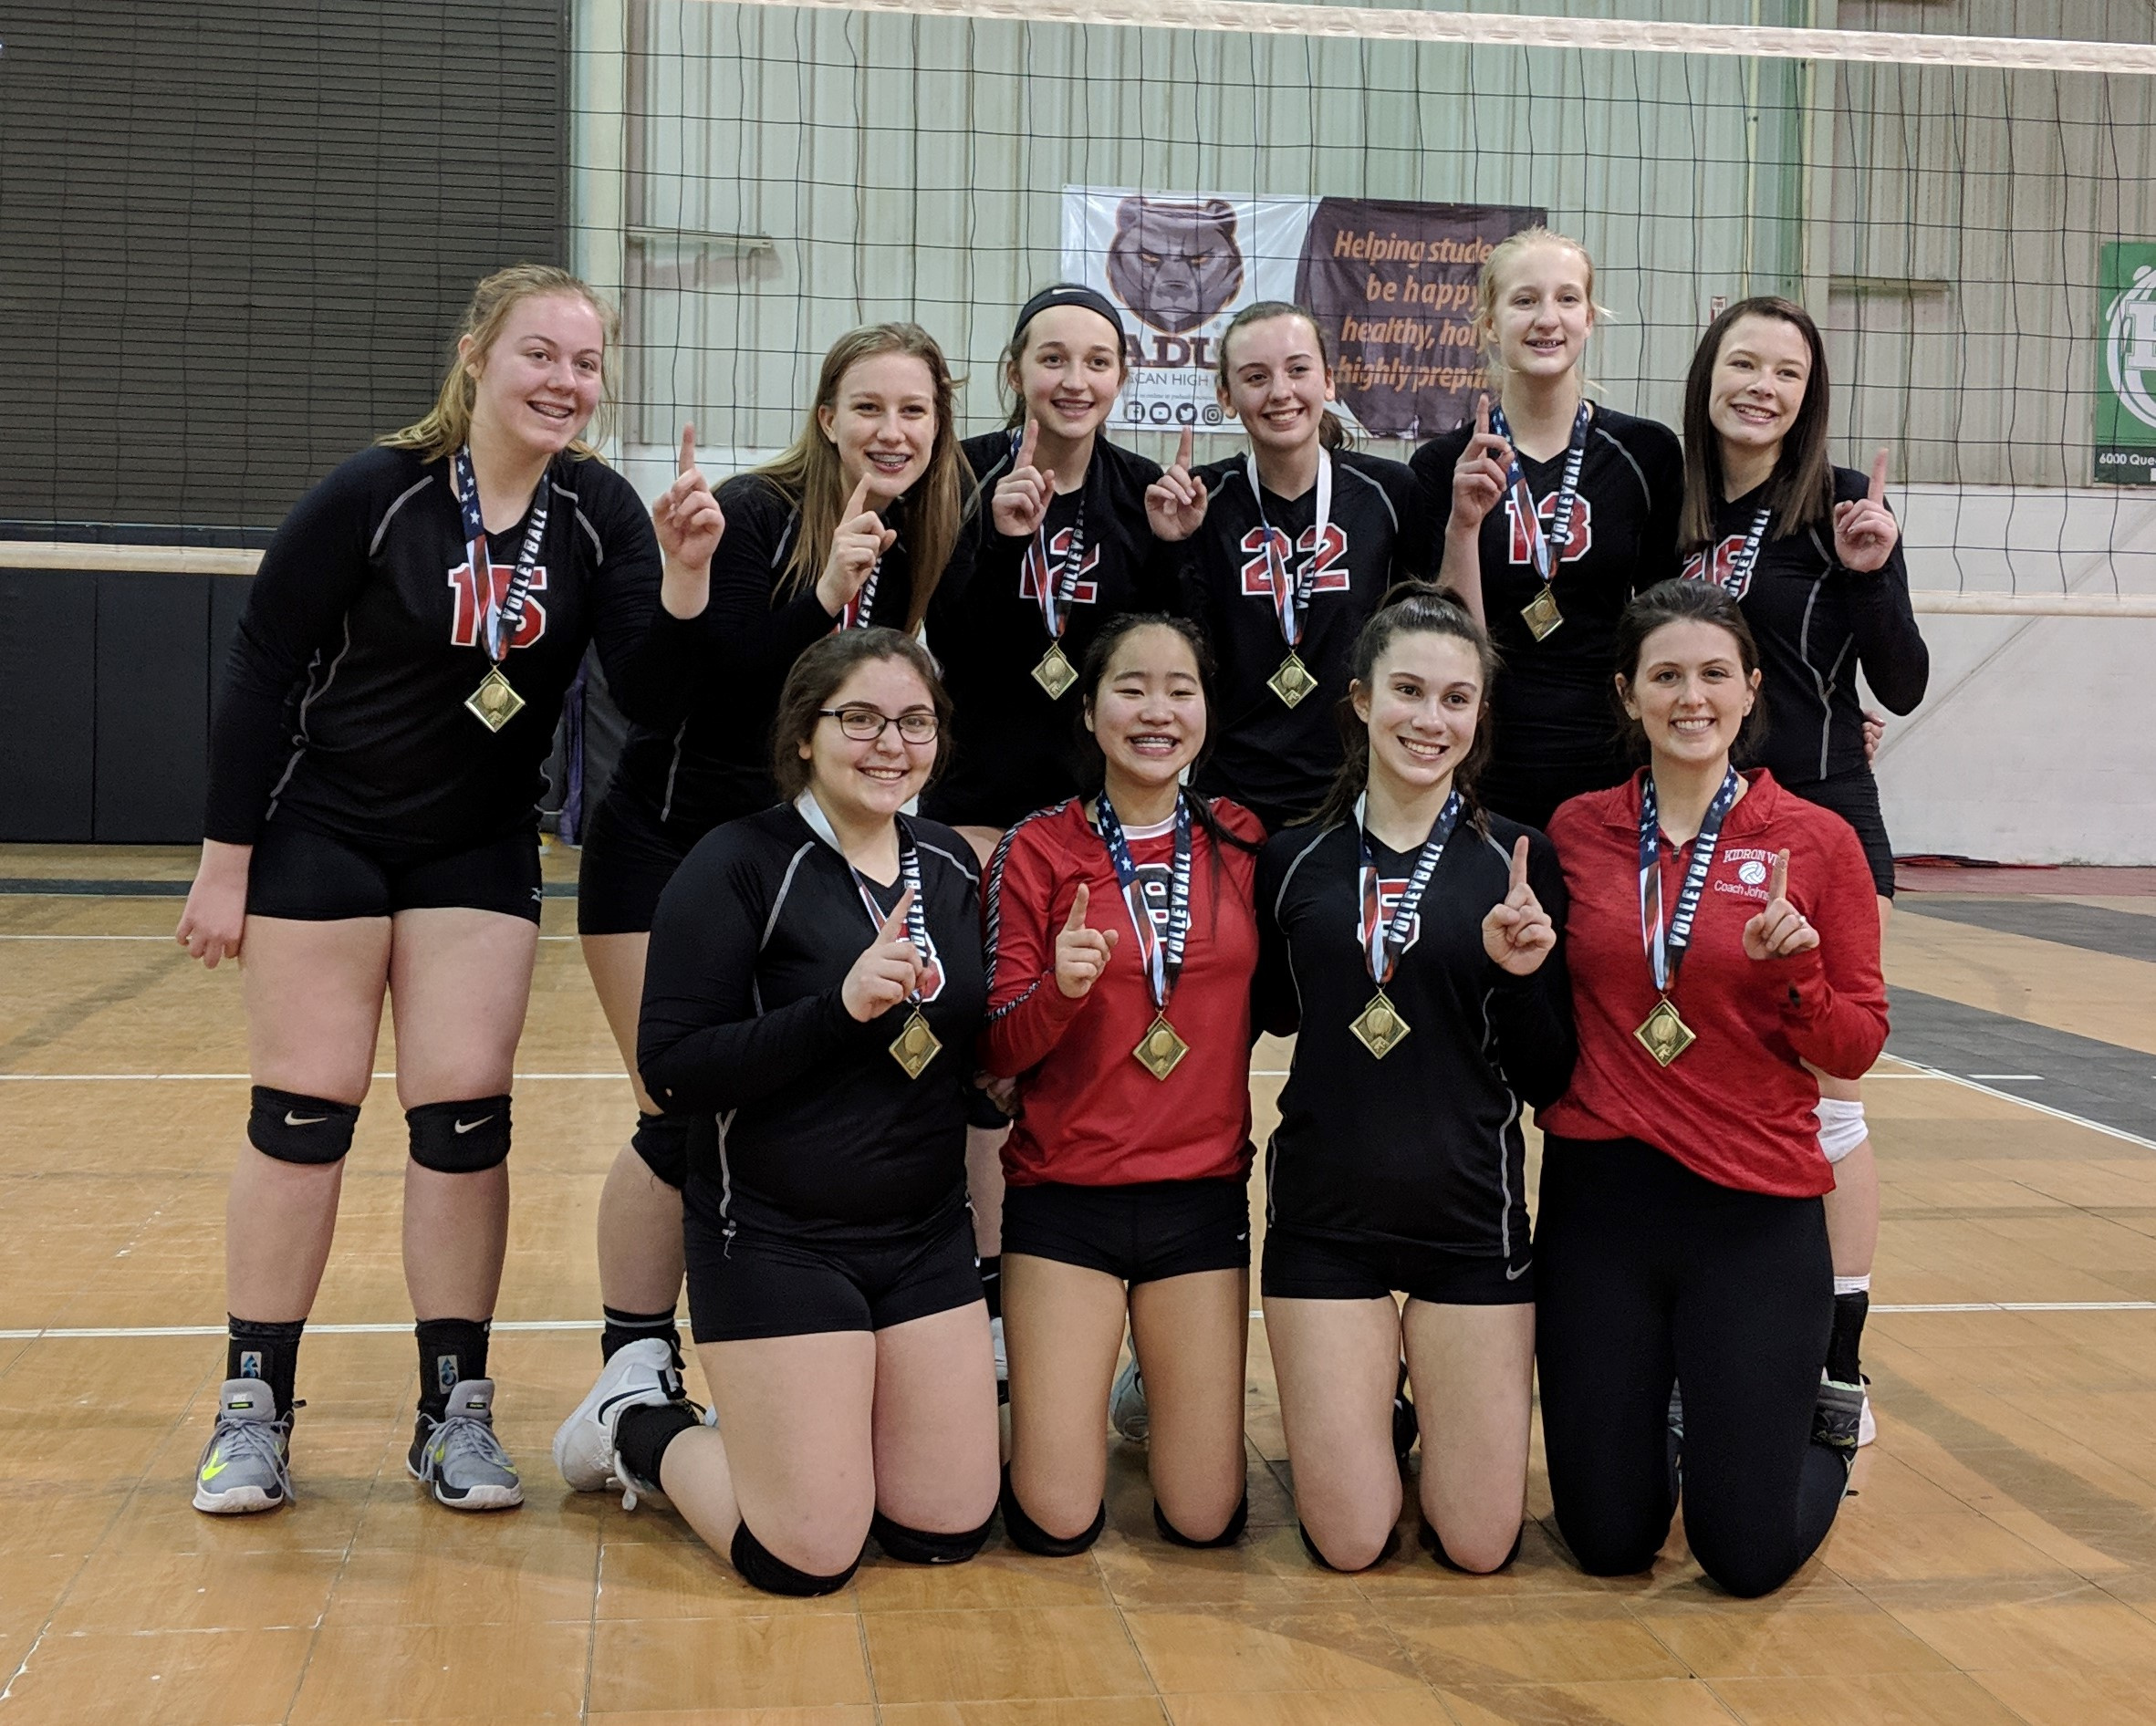 Mar 23, 2019 - Johnson 15R - GOLD Champs - OhioNets